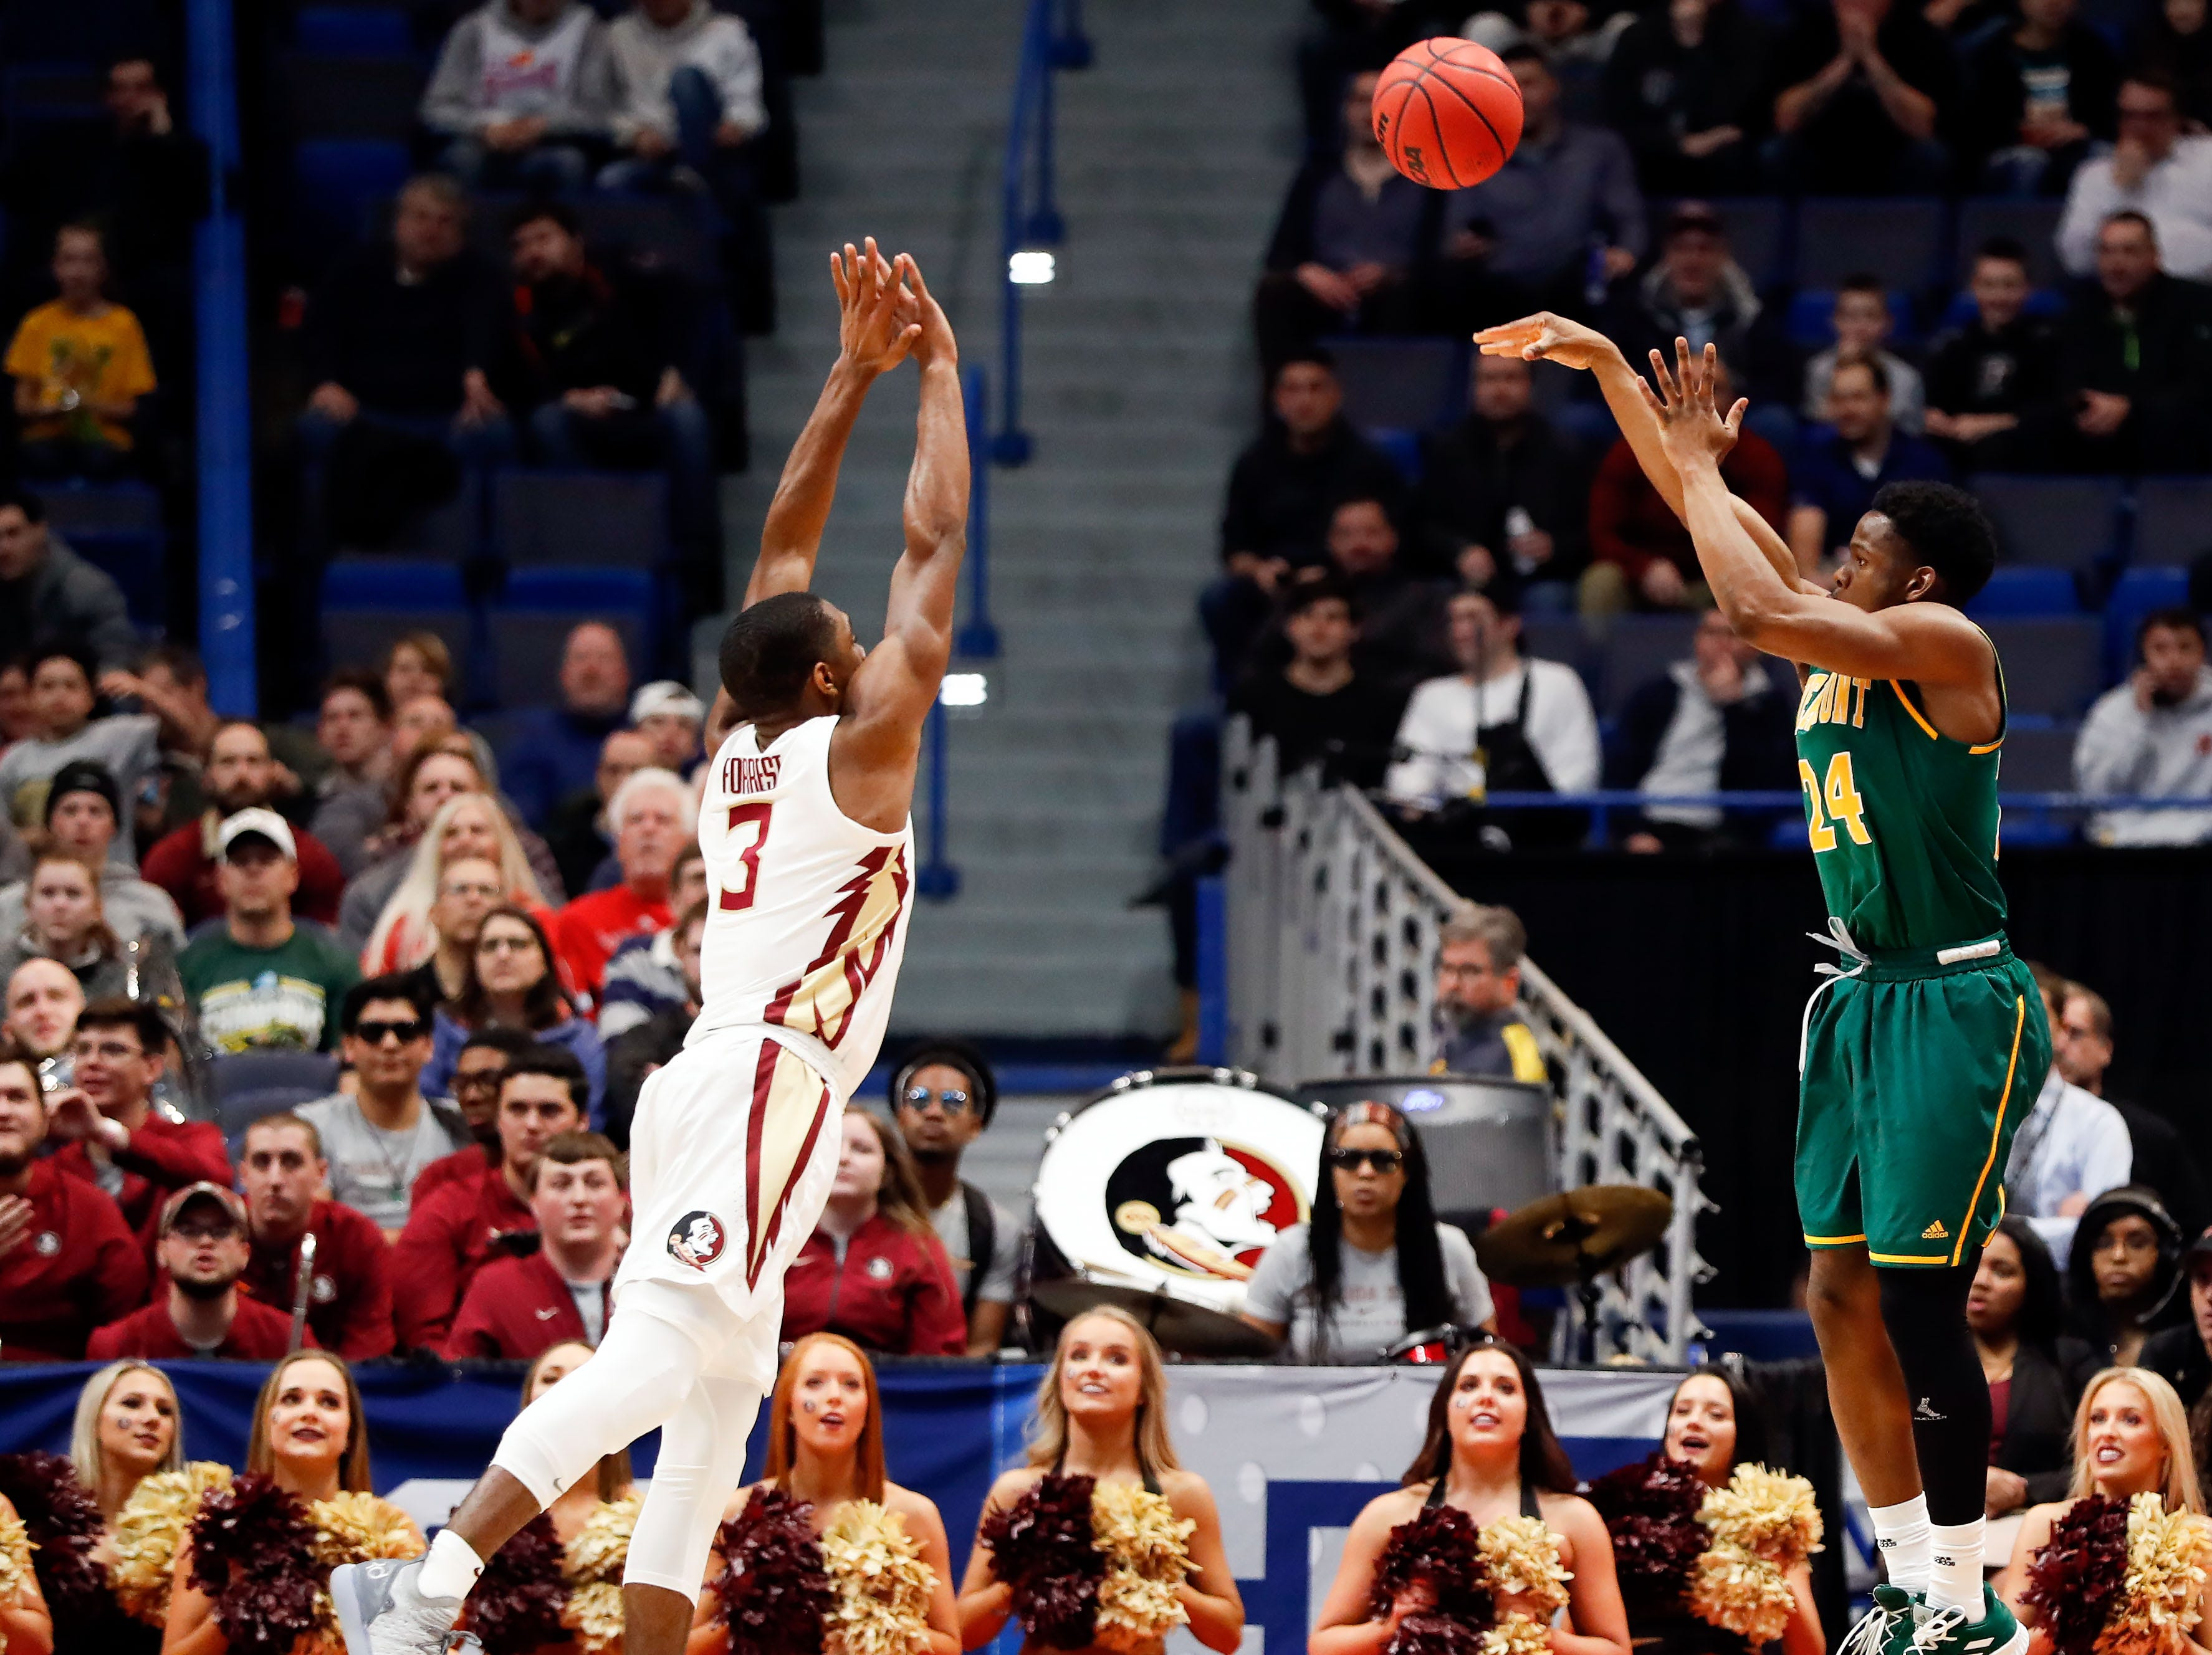 Mar 21, 2019; Hartford, CT, USA; Vermont Catamounts guard Ben Shungu (24) attempts a three point basket over Florida State Seminoles guard Trent Forrest (3) during the first half of a game in the first round of the 2019 NCAA Tournament at XL Center. Mandatory Credit: David Butler II-USA TODAY Sports